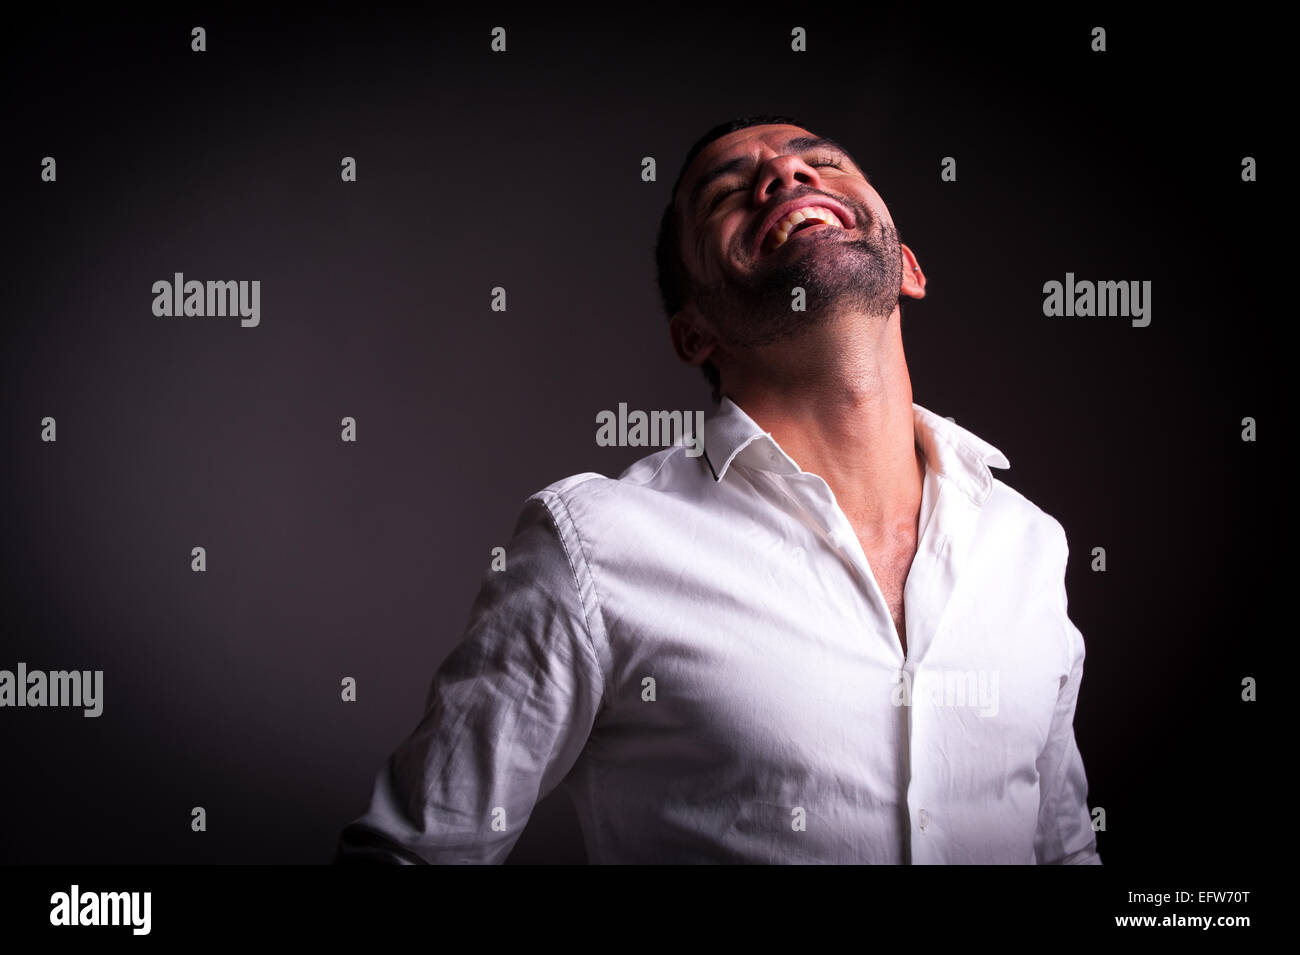 man showing satisfaction or happyness - Stock Image